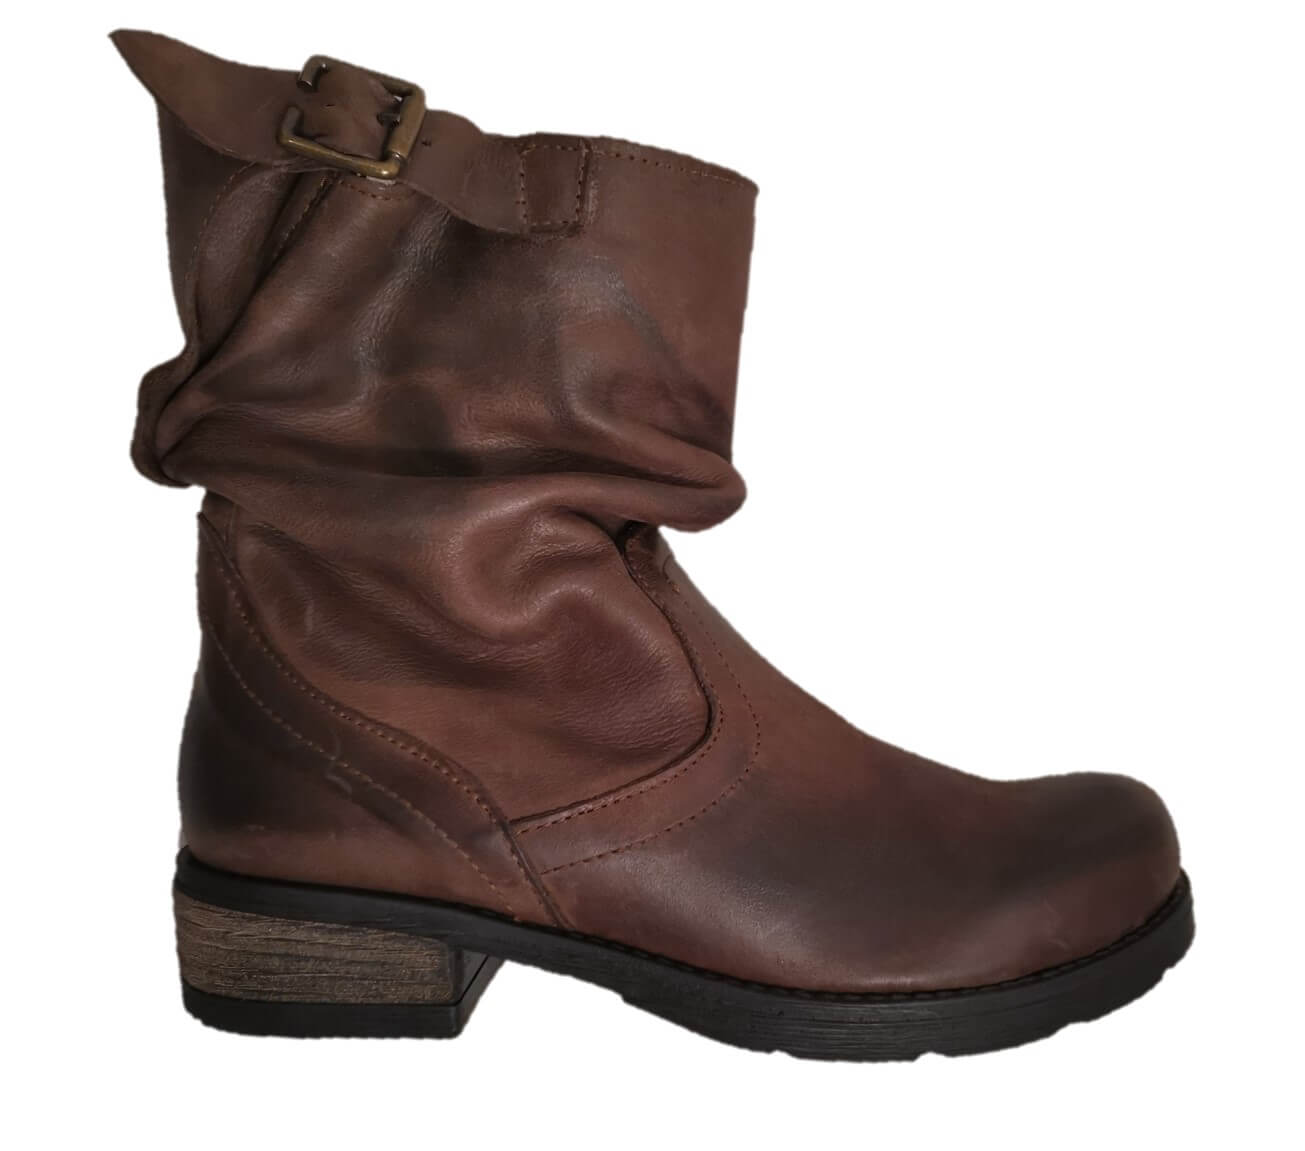 Brown low boots